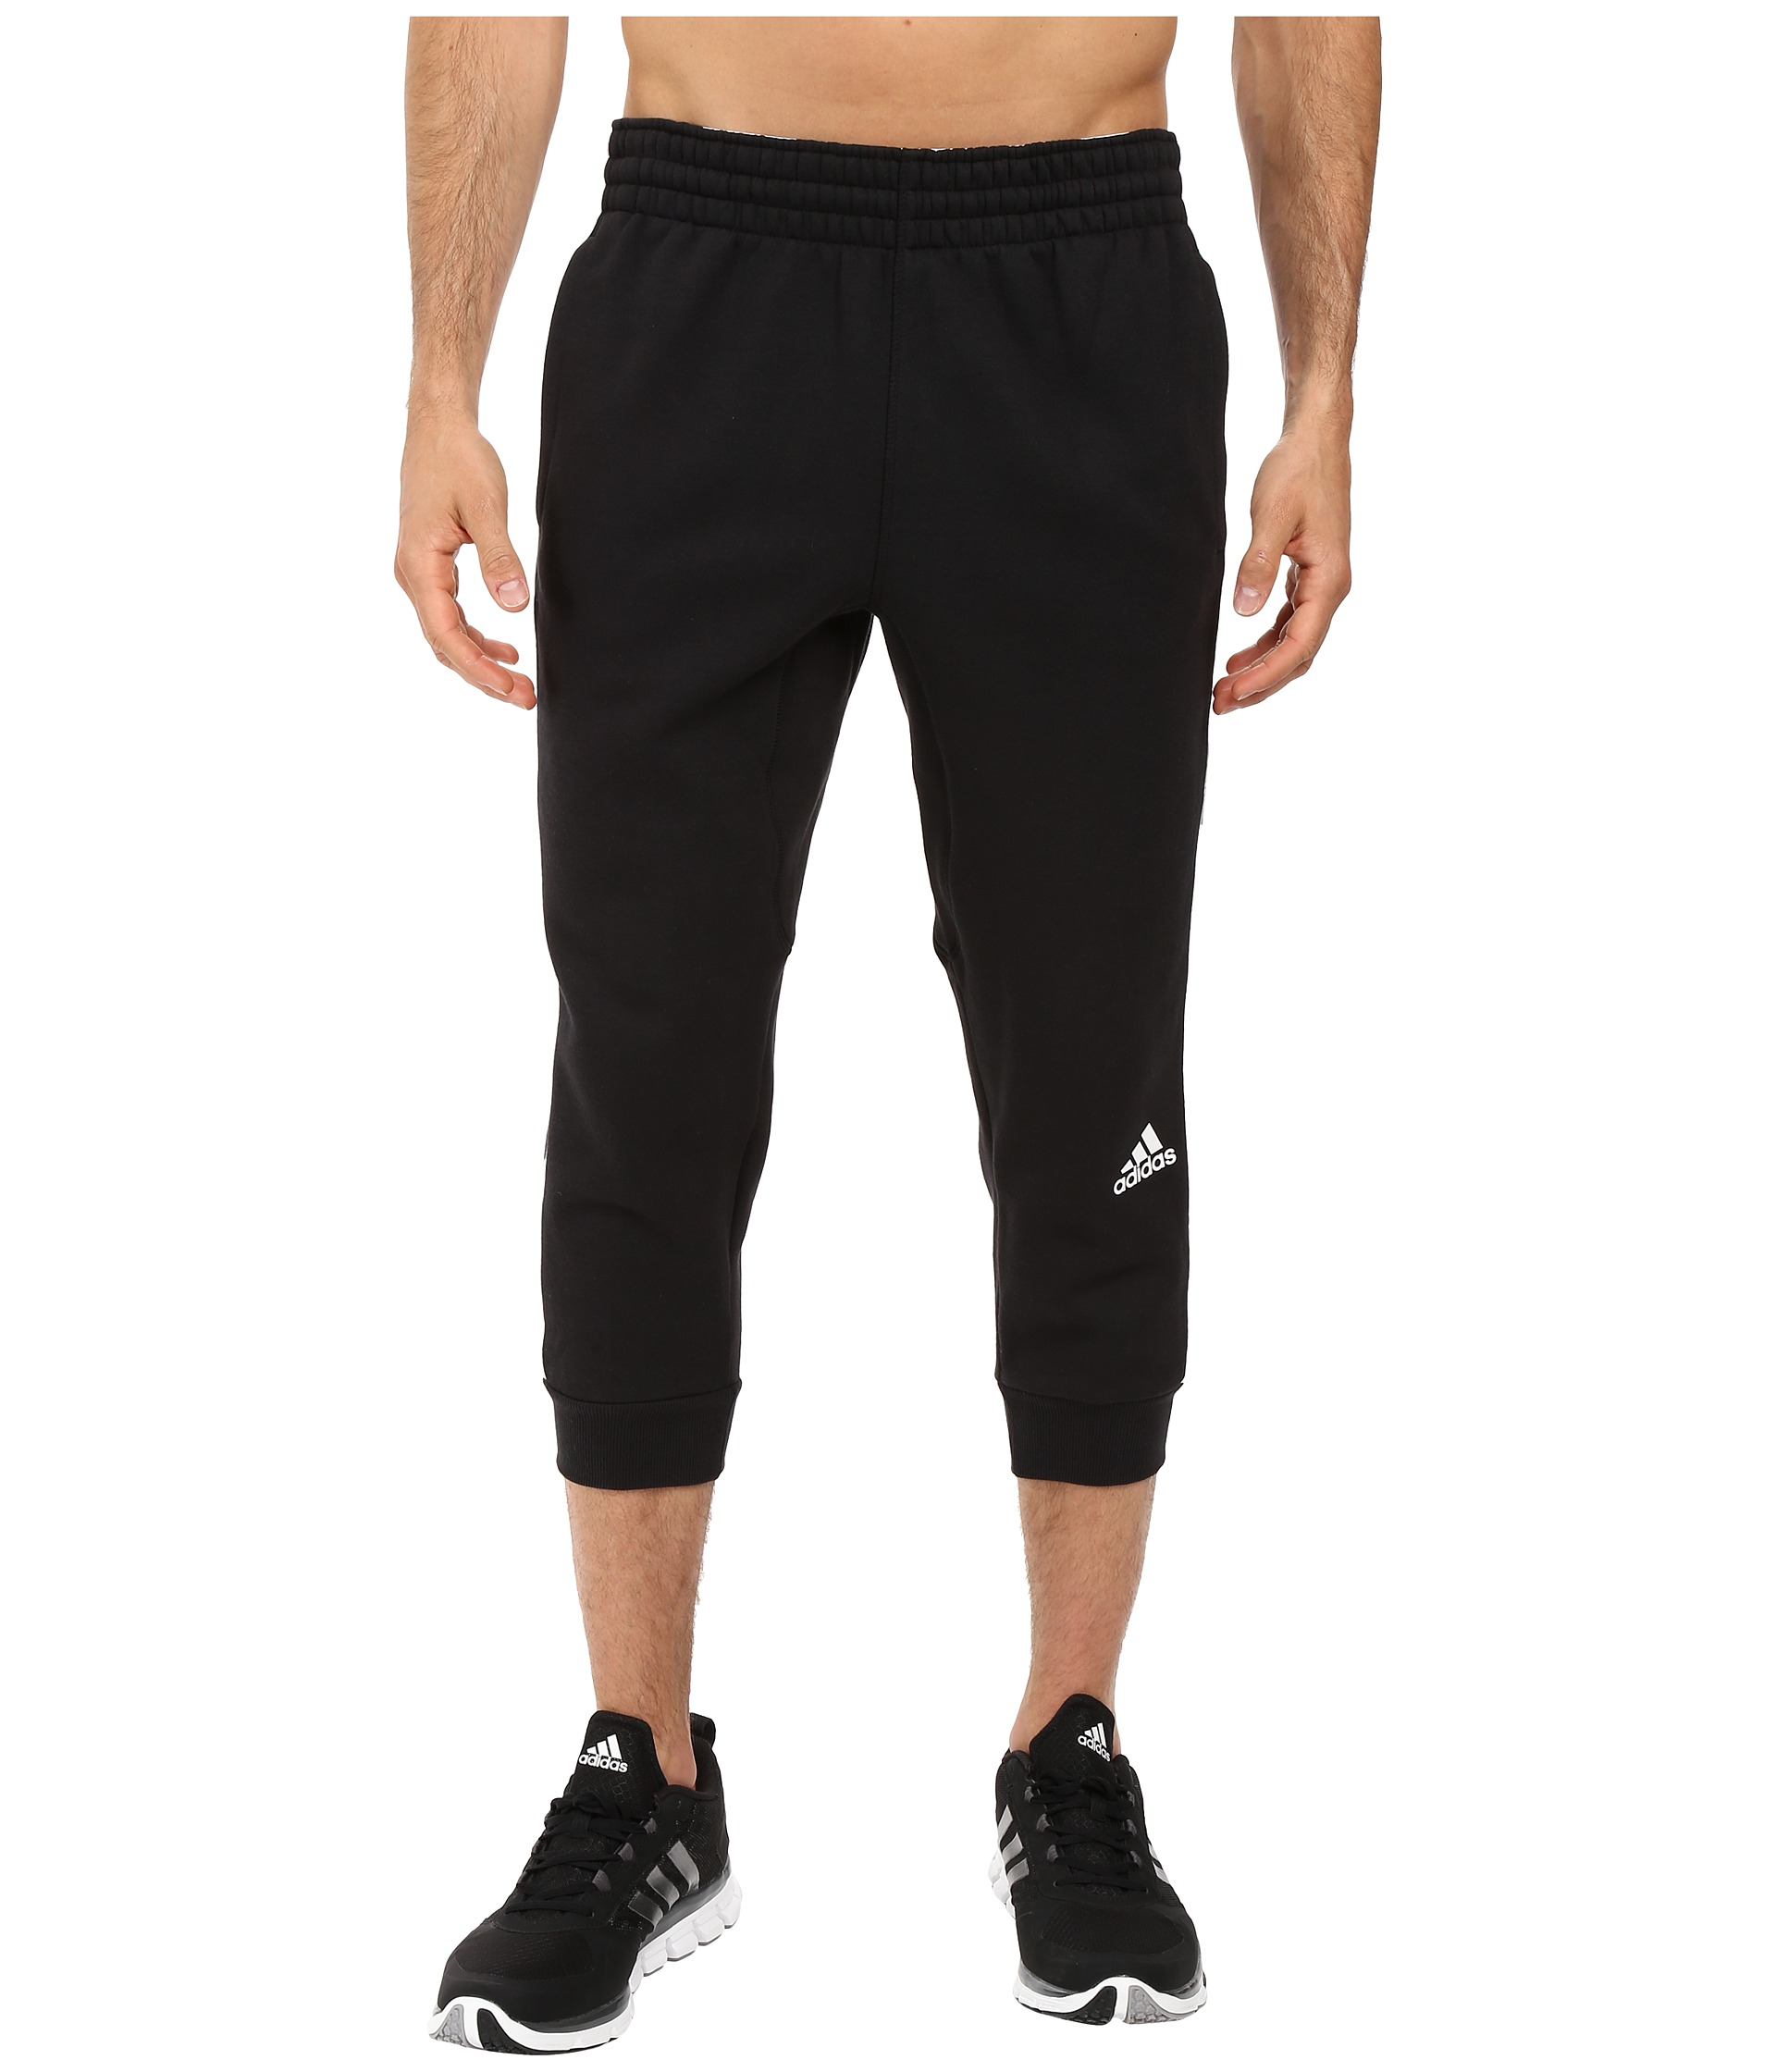 Buy adidas mens skinny sweatpants  Free shipping for worldwide!OFF70 ... d0c133221ab5